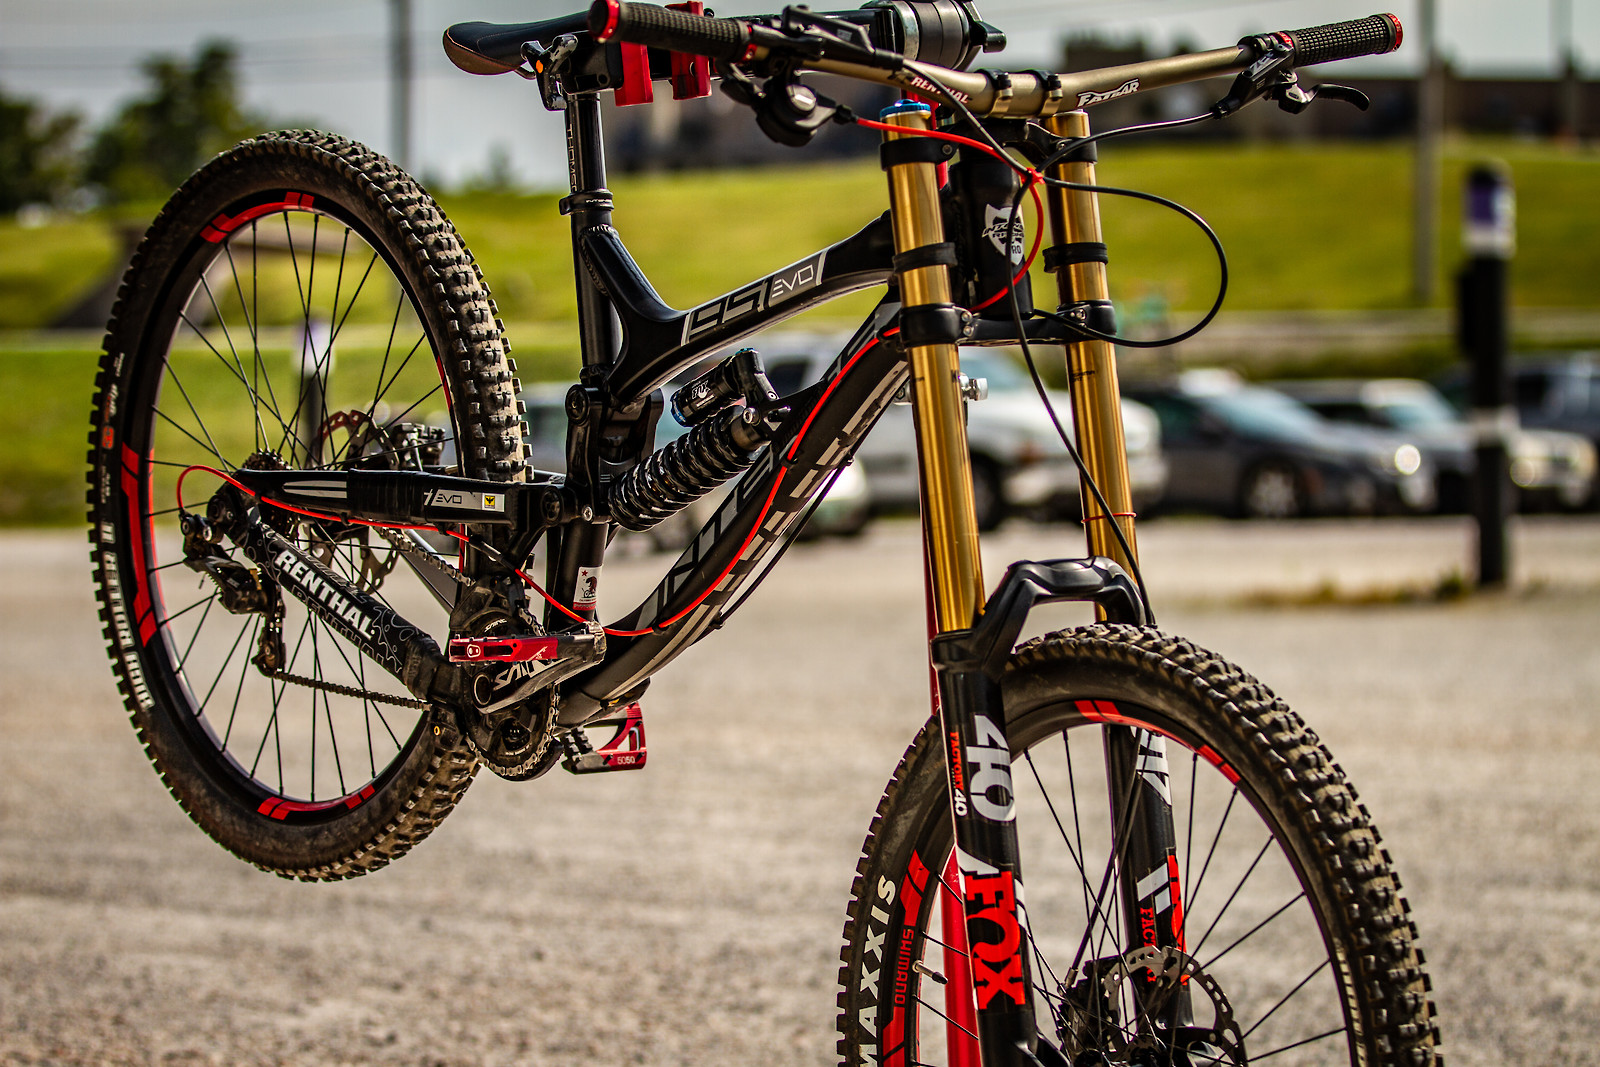 2015 Intense 951 EVO - JackRice - Mountain Biking Pictures - Vital MTB